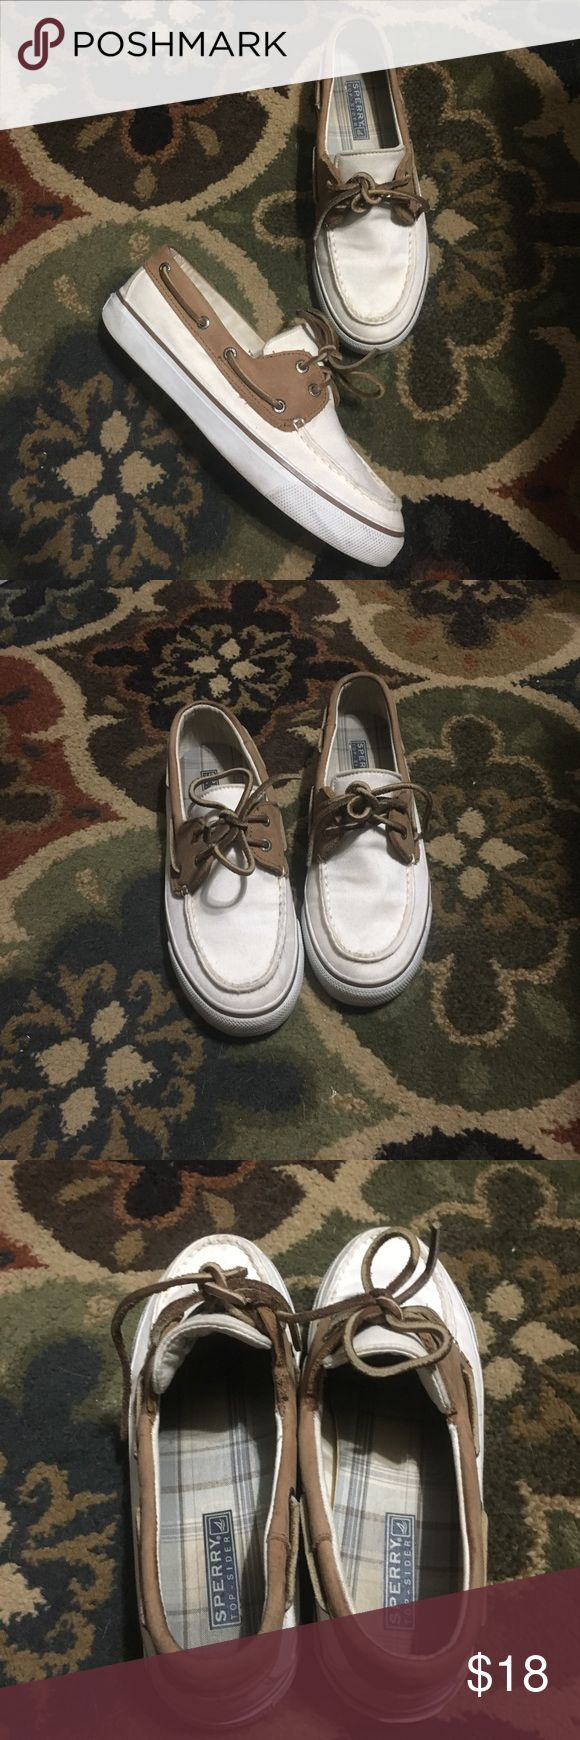 Sperry Topsider boat shoes - size 6.5 White Sperry Topsider shoes in good used condition. Size 6.5. Price reflects wear Sperry Top-Sider Shoes